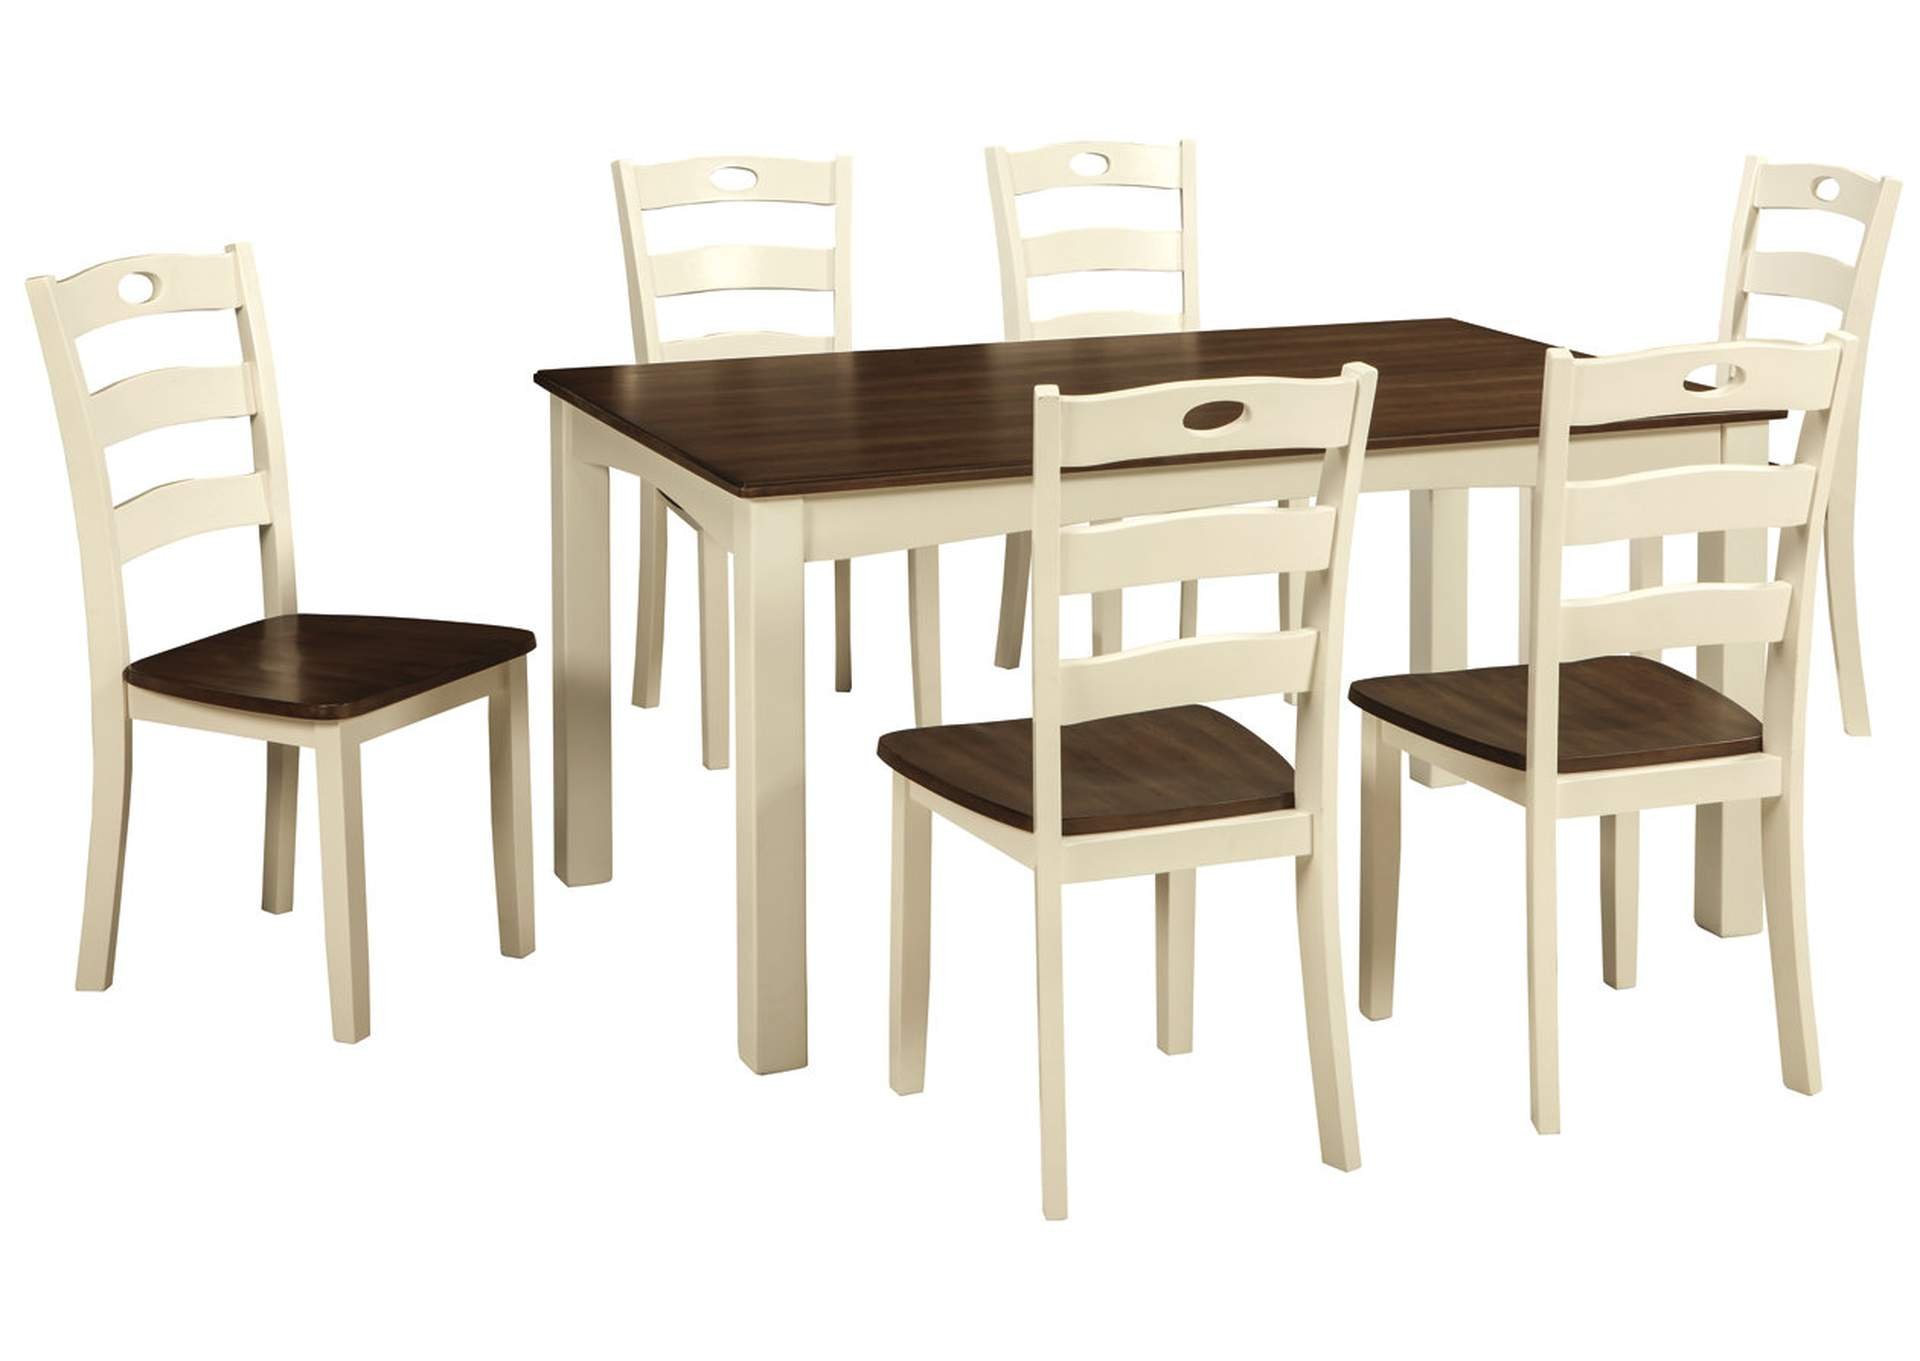 Compass Furniture Woodanville WhiteBrown Dining Room